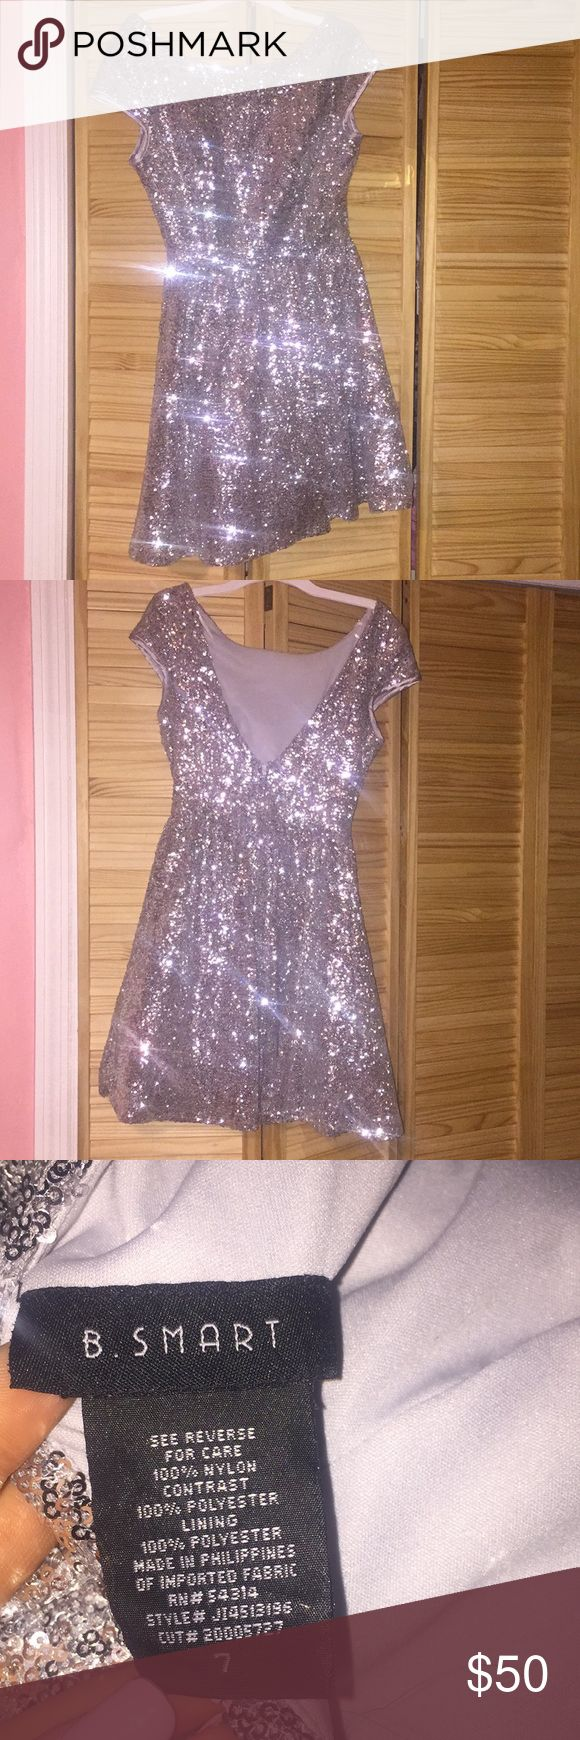 Beautiful silver sequenced dress worn one time jcpenney Dresses Prom